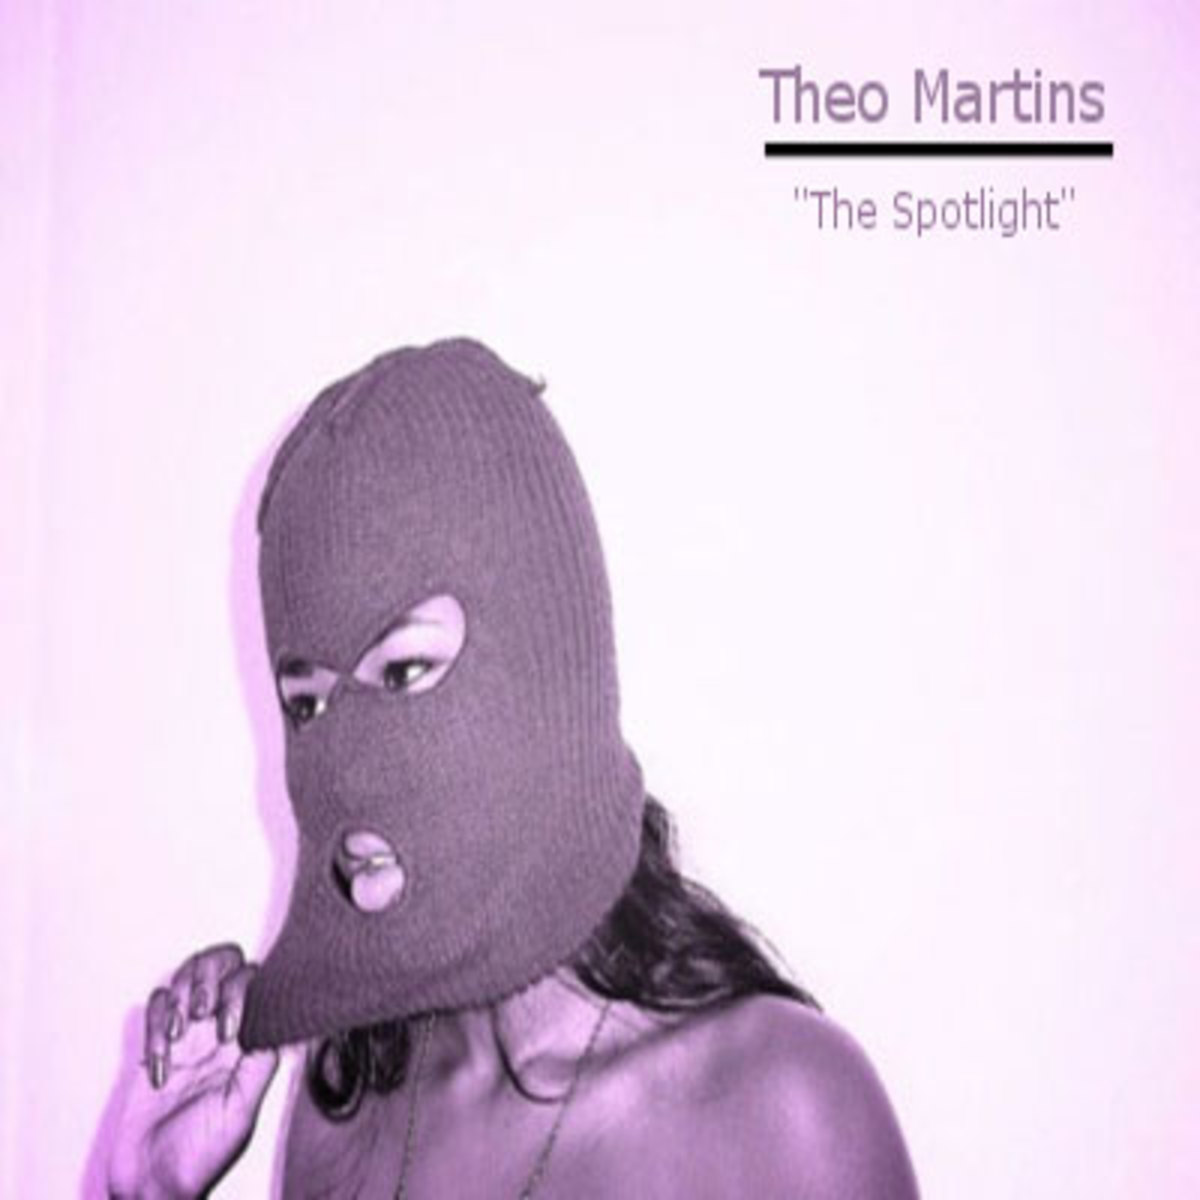 theomartins-thespotlight.jpg